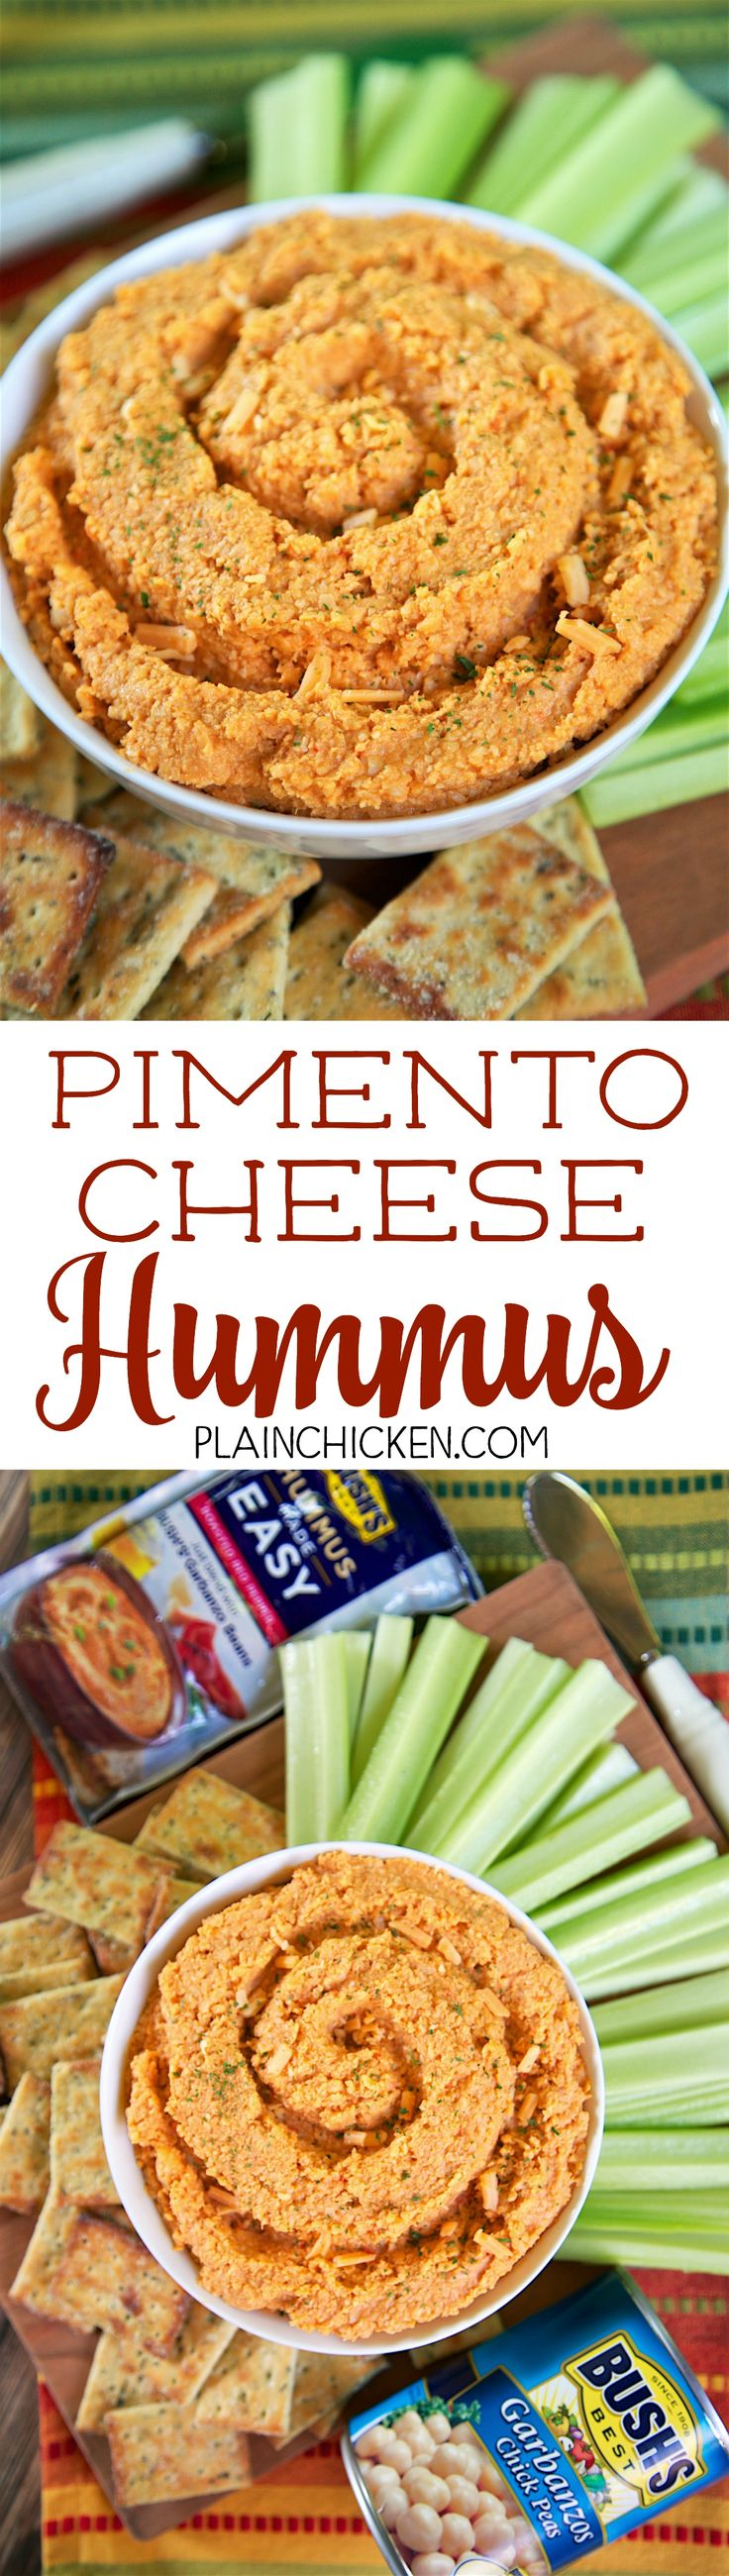 3-Ingredient Pimento Cheese Hummus - Bush's Garbanzo beans, Bush's Roasted Red Pepper Hummus Made Easy and cheddar cheese. Ridiculously easy and crazy delicious! Ready in about a minute! Whip this up when you need a last minute snack. Great for parties and tailgates!!